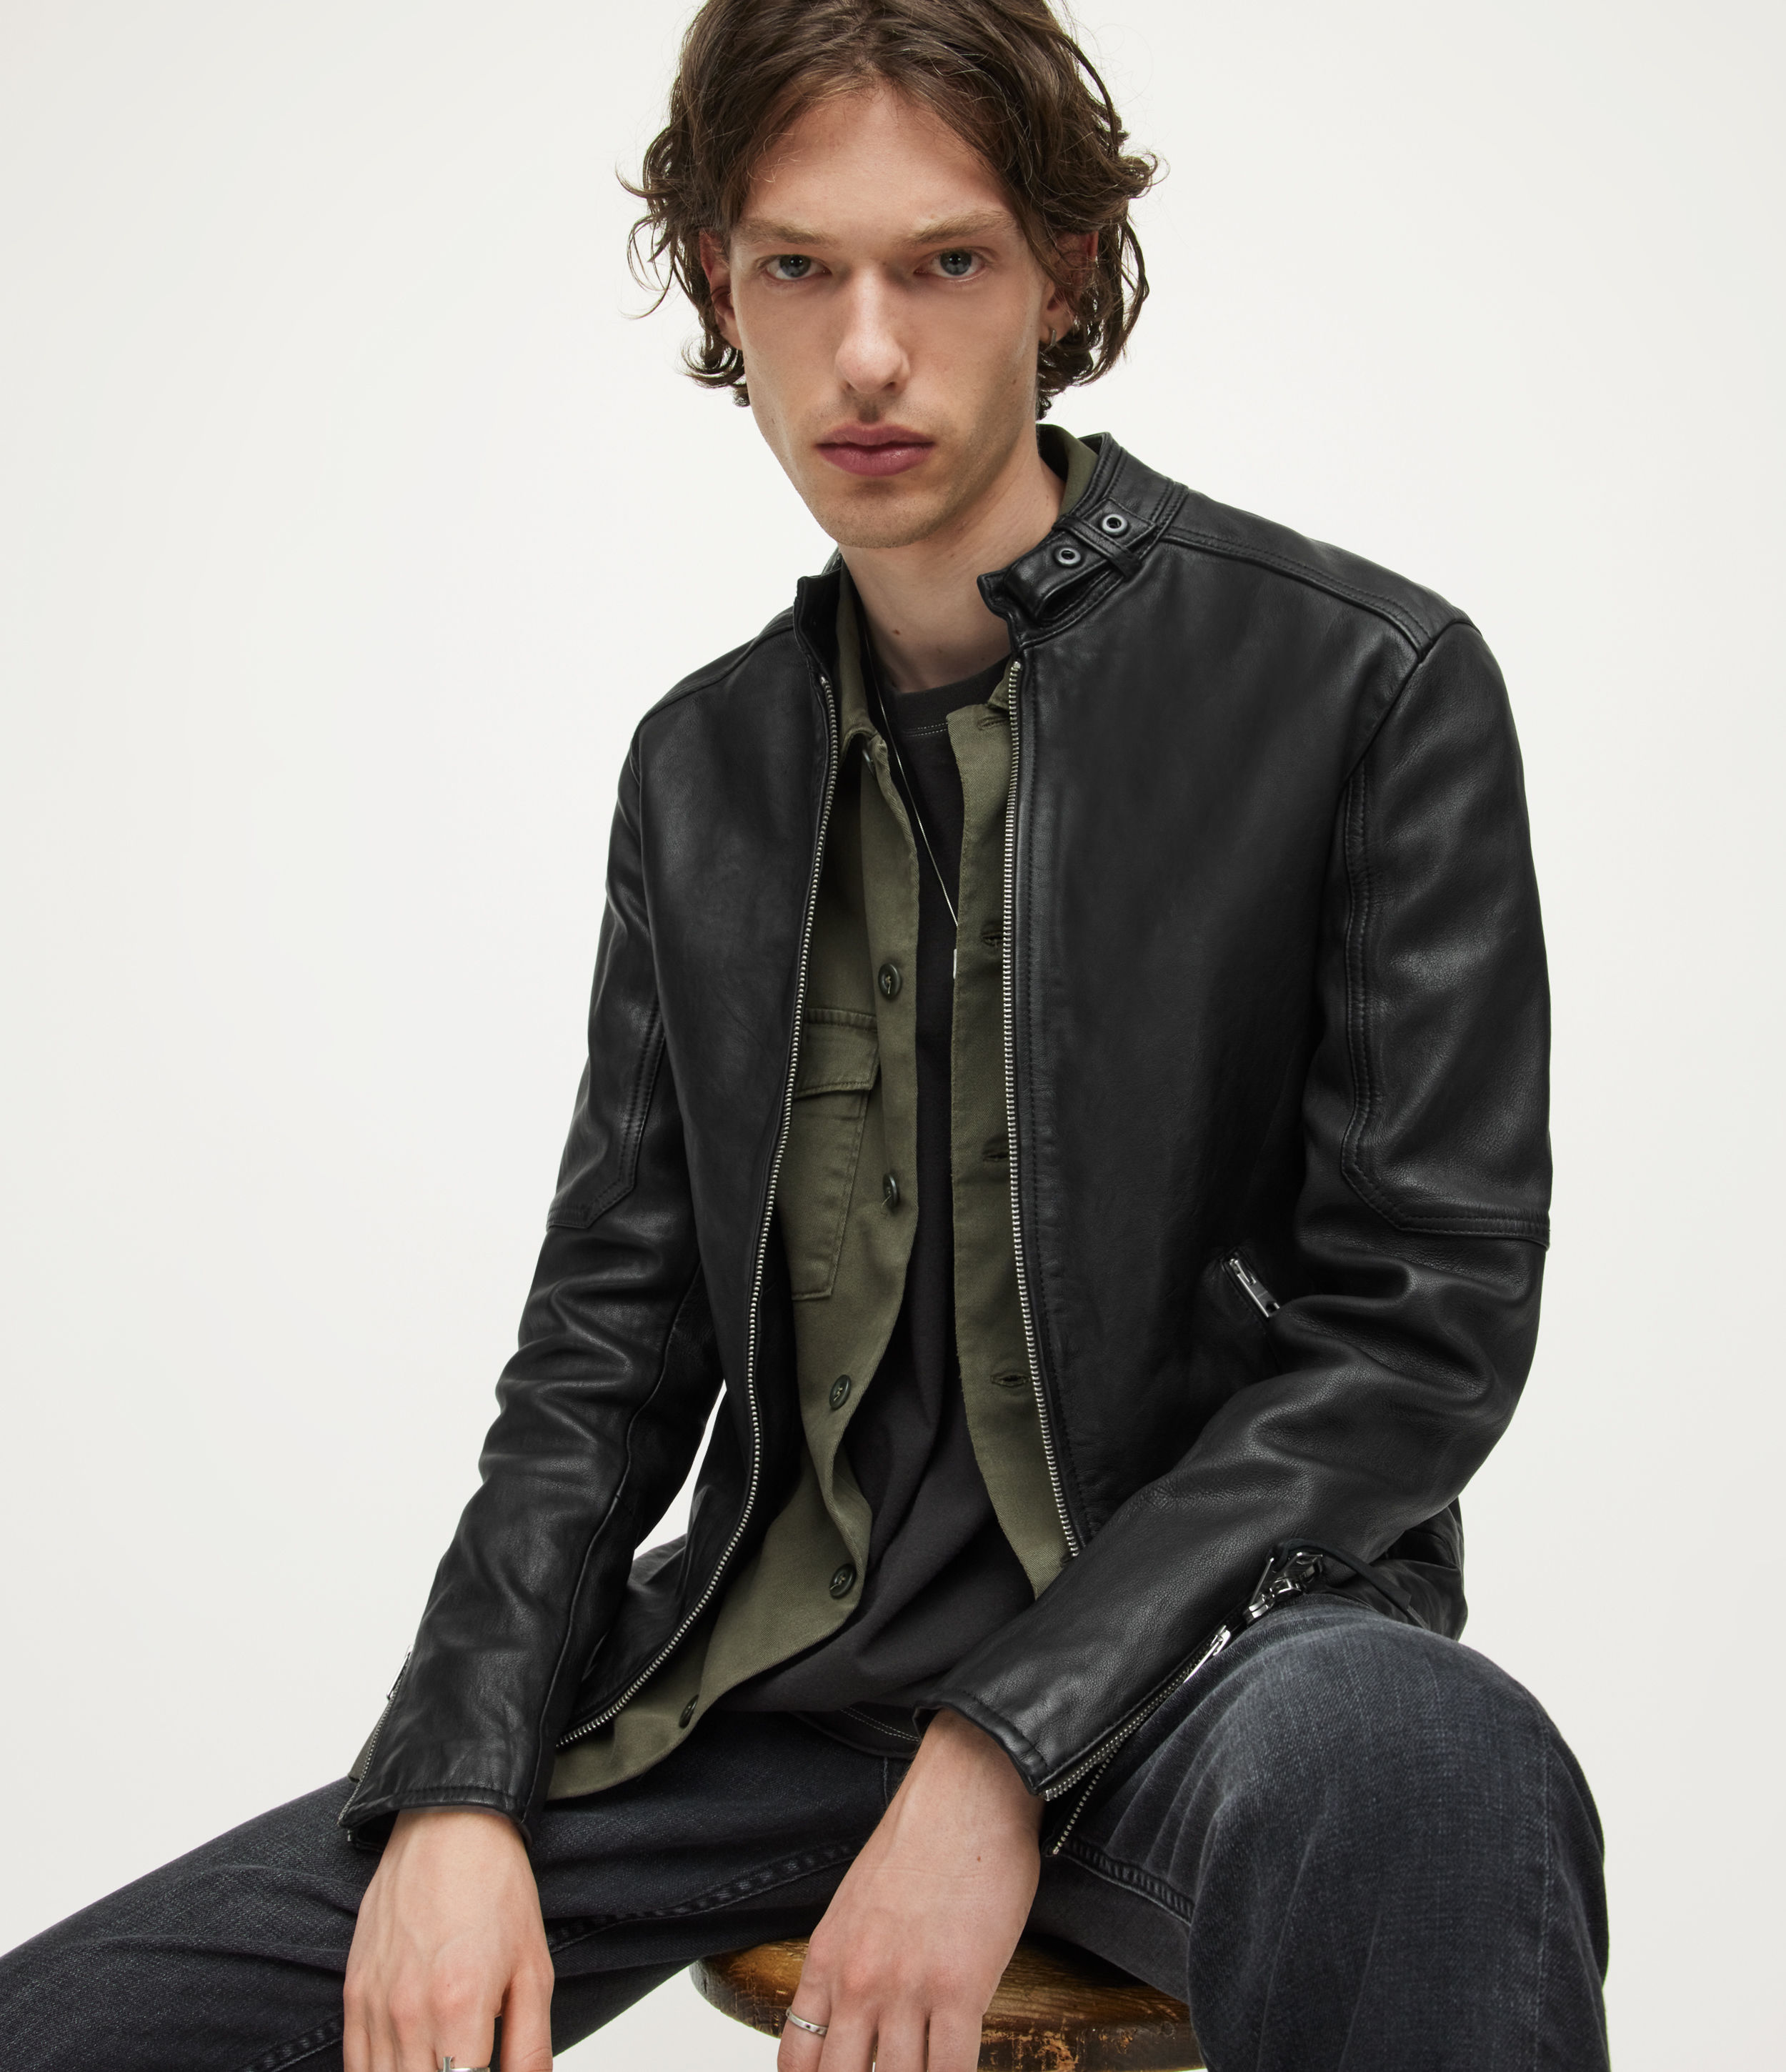 AllSaints Men's Leather Traditional Cotton Cora Jacket, Black, Size: XL